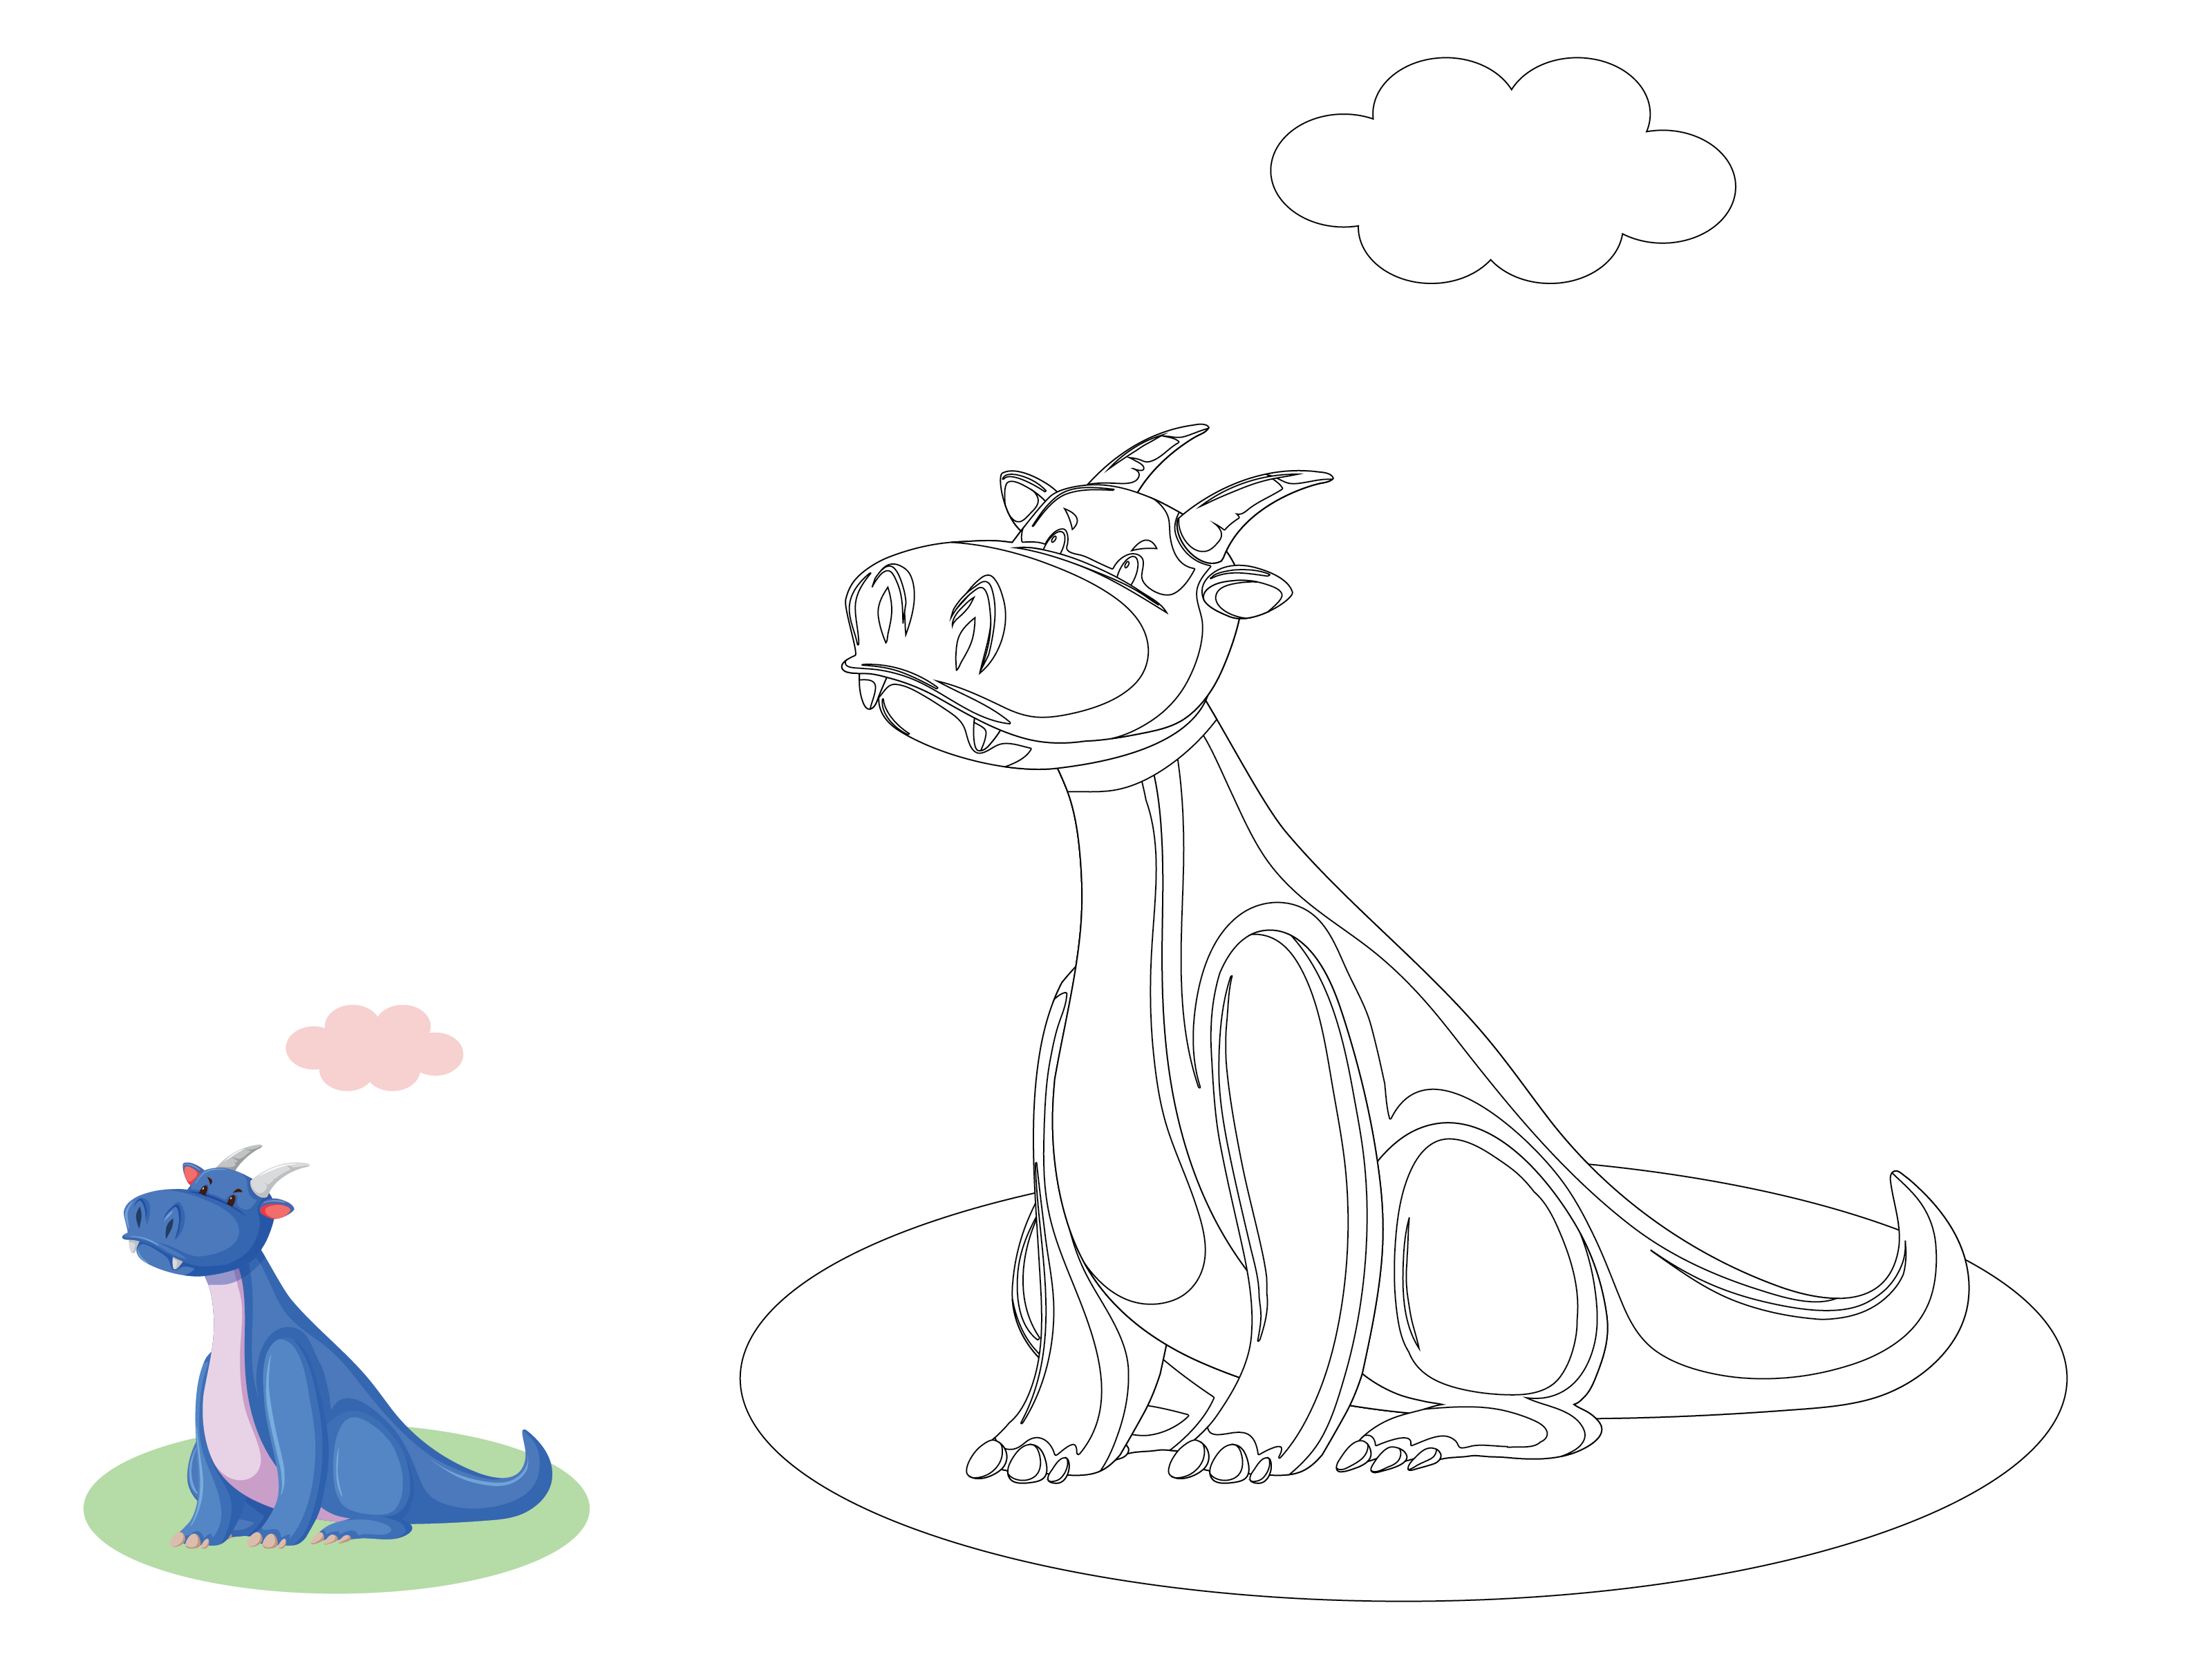 Animal Dragon Kids Coloring (Graphic) by